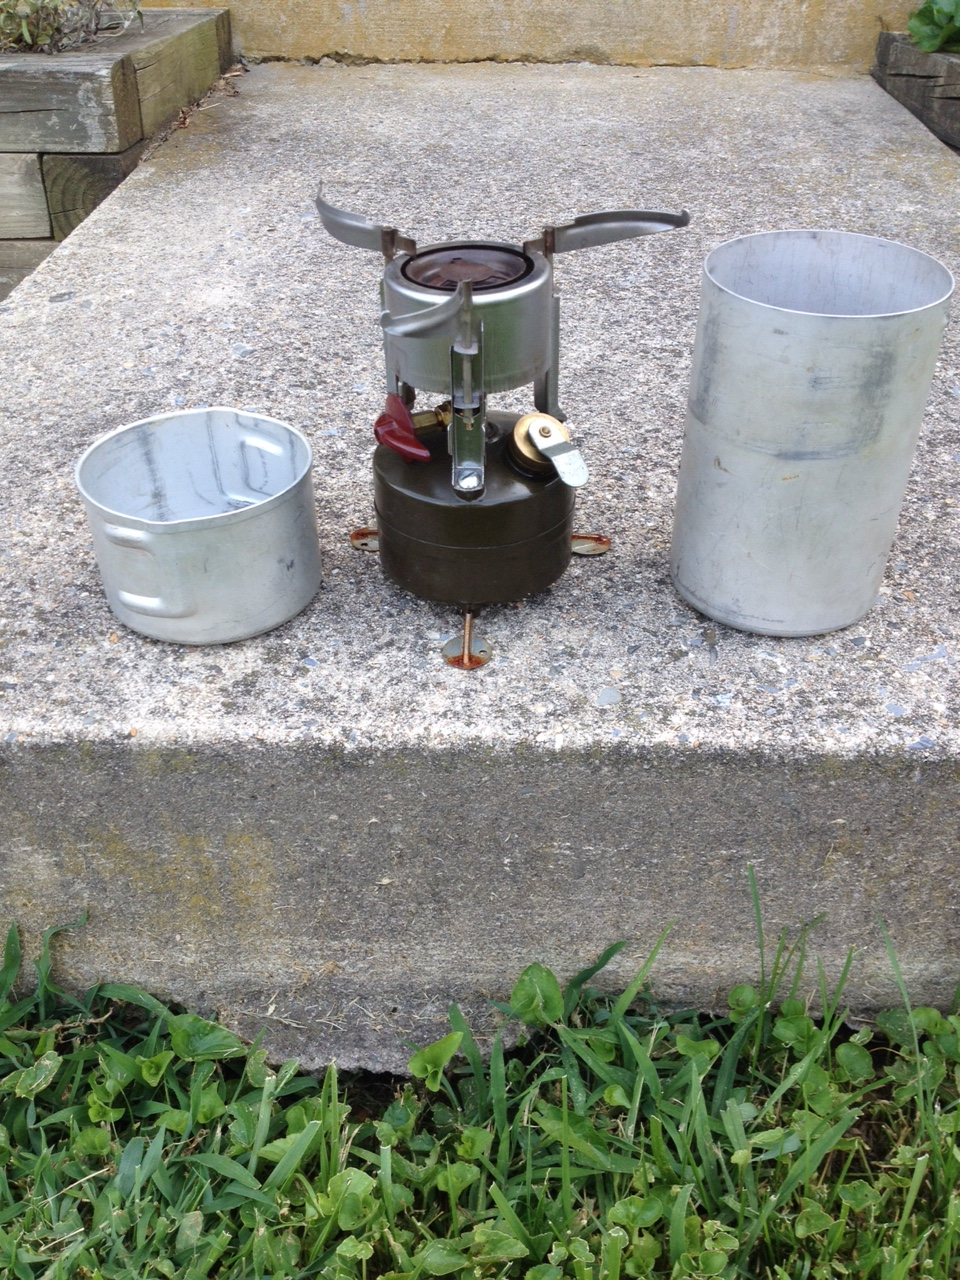 G.I. Stove 1948 and on to Viet Nam. Green front, a bit bigger, different burner arrangement. Can is the same as 1944